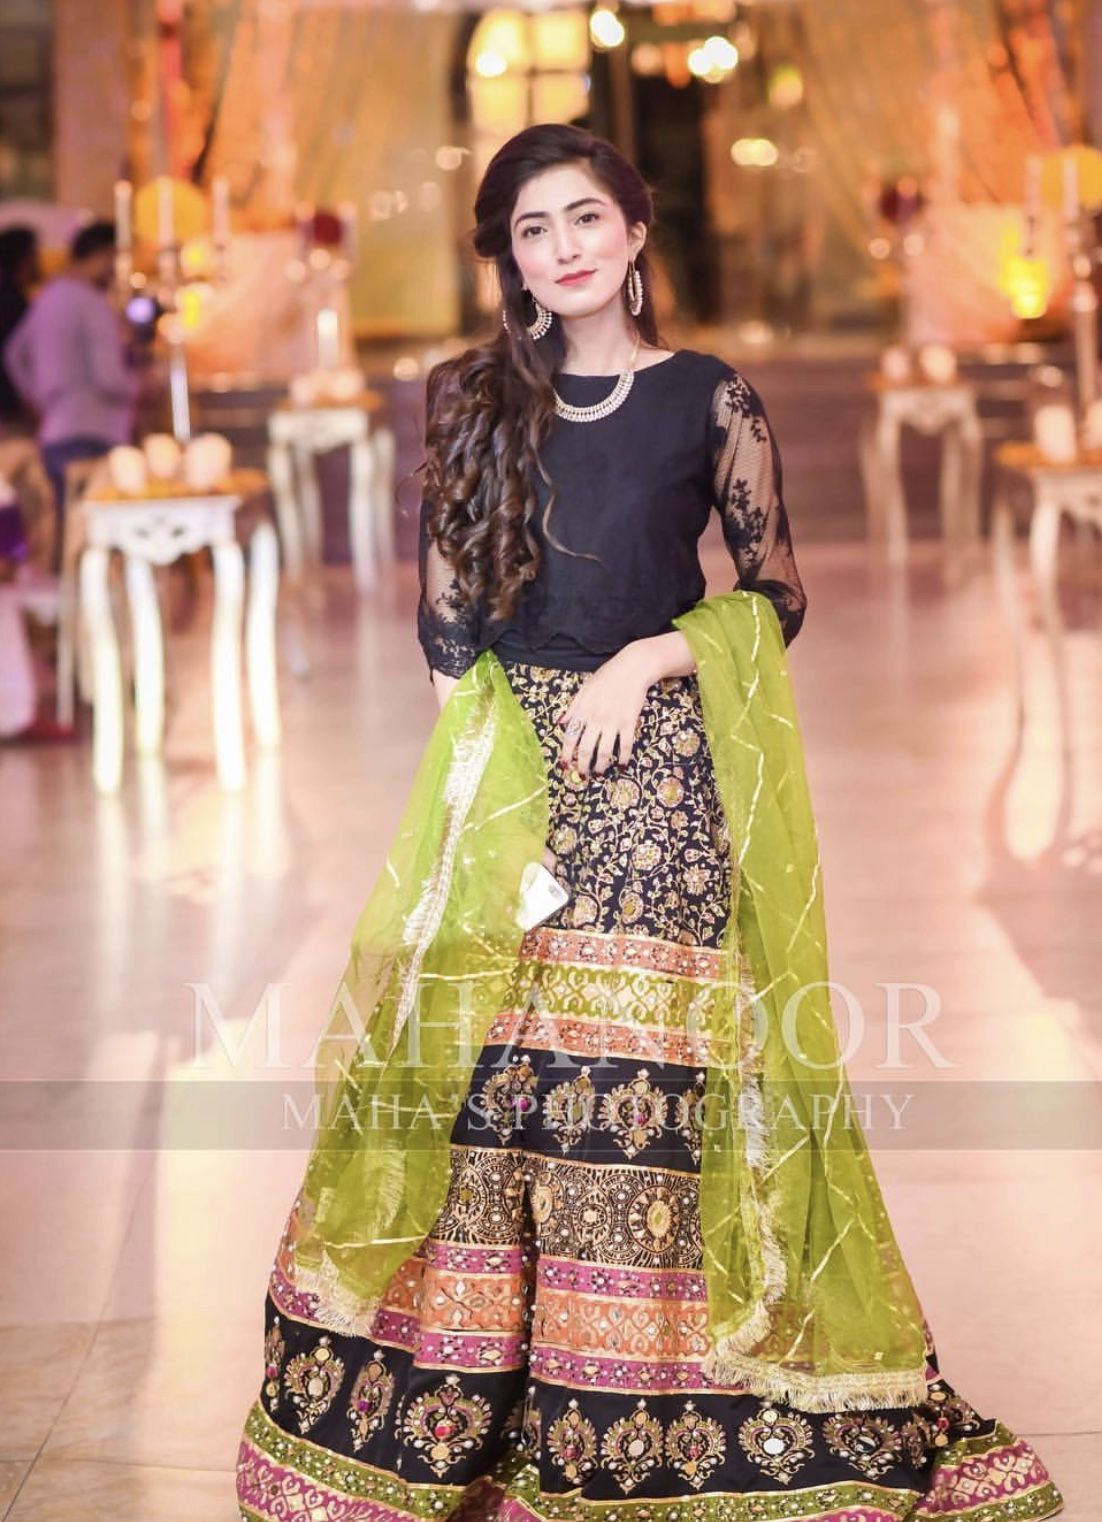 Brides sister or cousin Mehndi dress in 2019